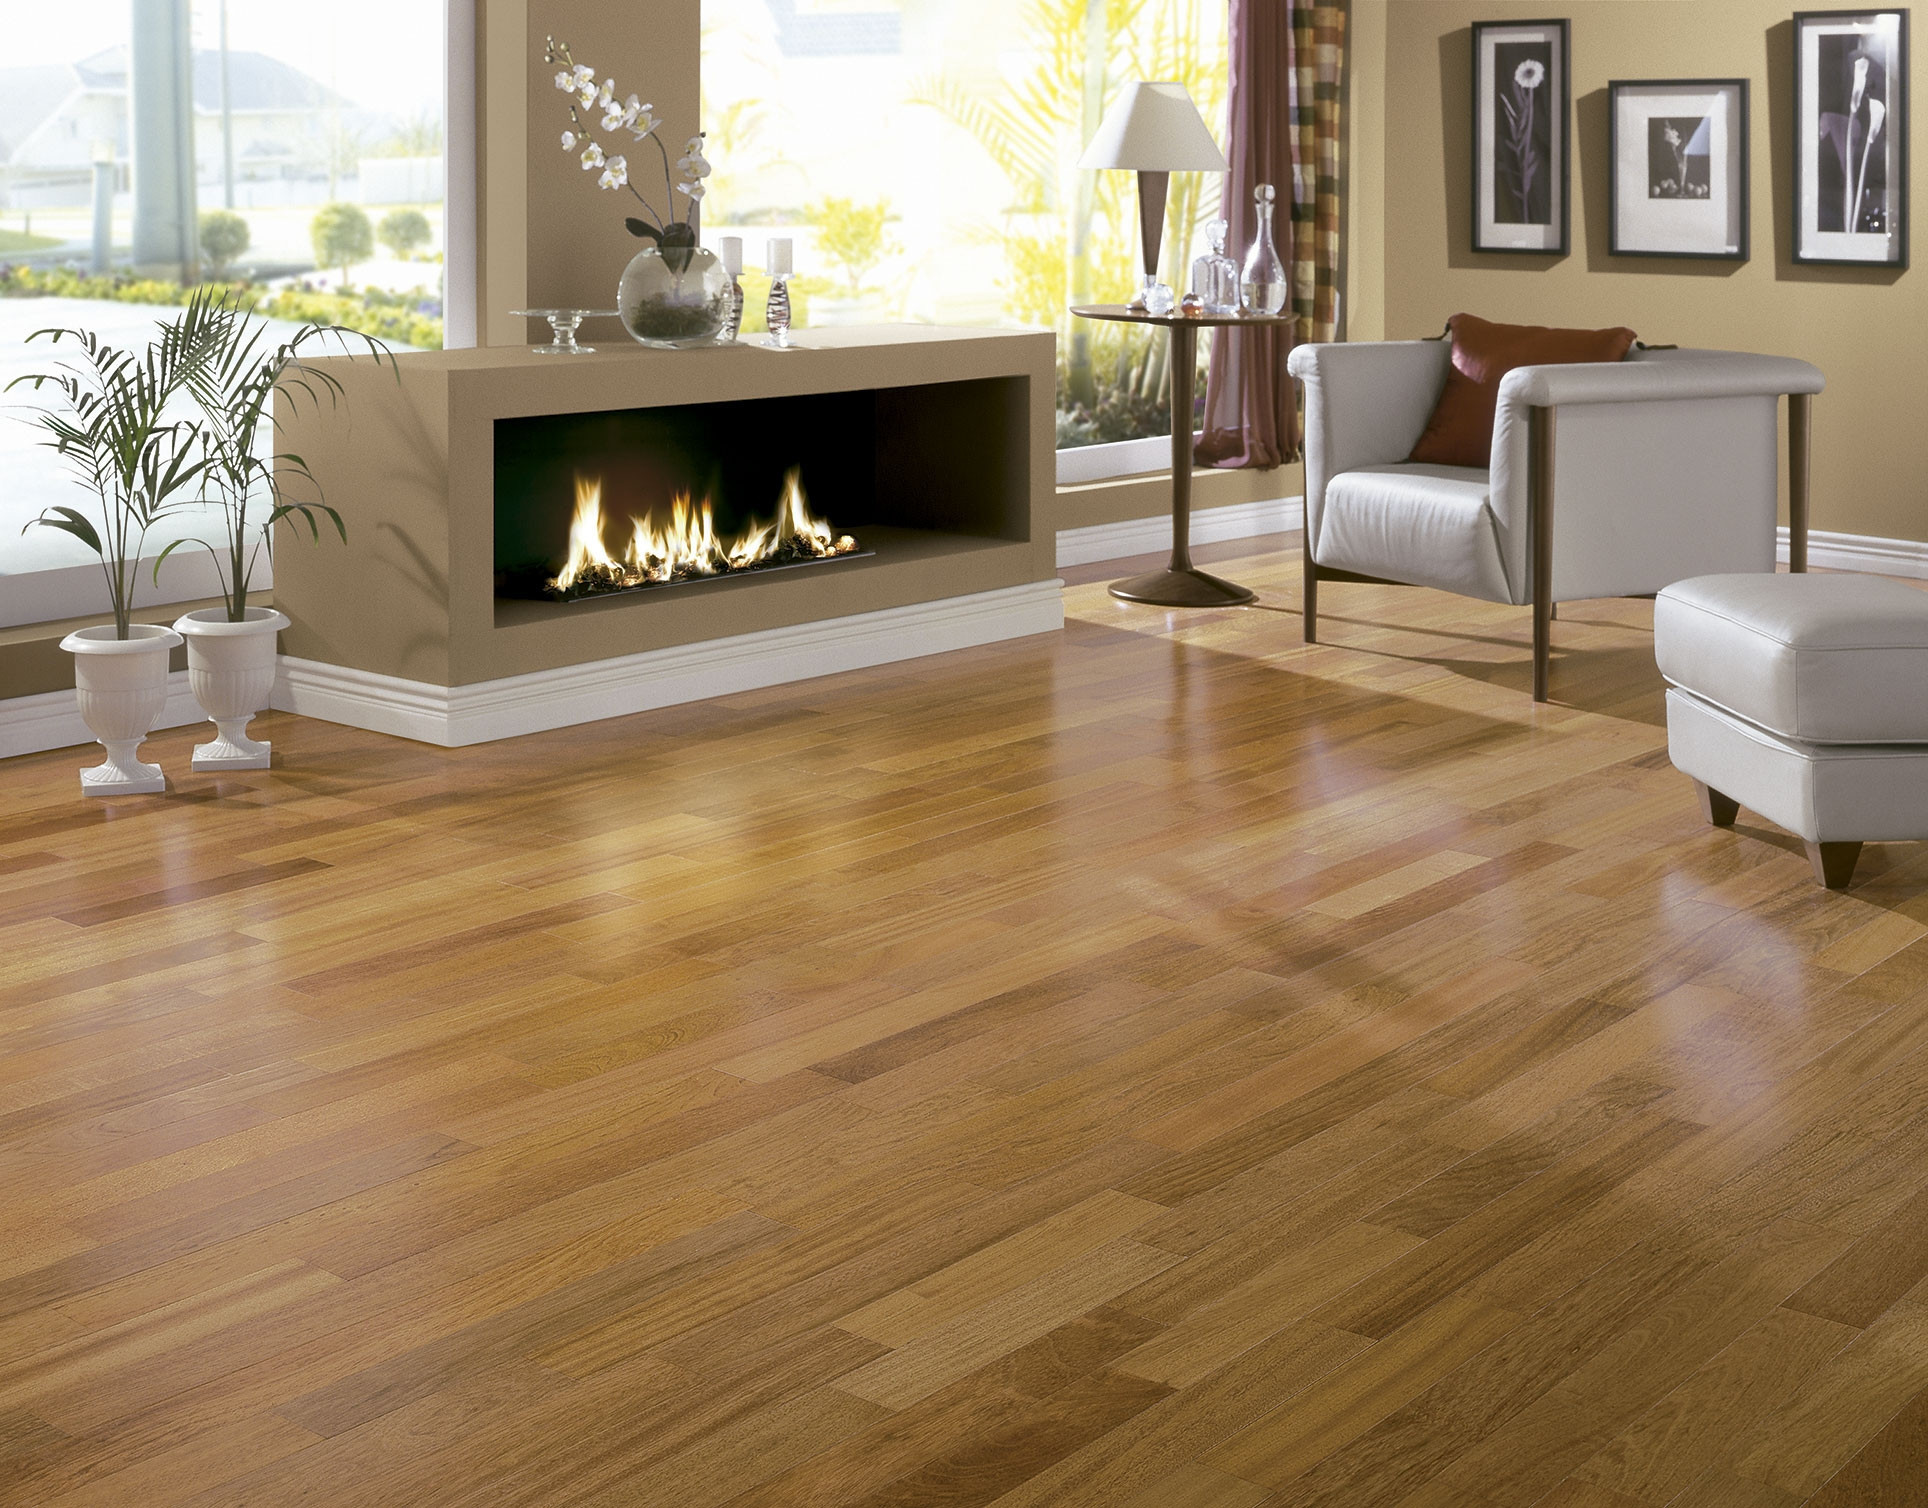 laminate flooring or hardwood flooring of fresh laminate or engineered wood flooring for kitchen throughout hand scraped engineered wood flooring fresh engaging discount hardwood flooring 5 where to buy inspirational 0d